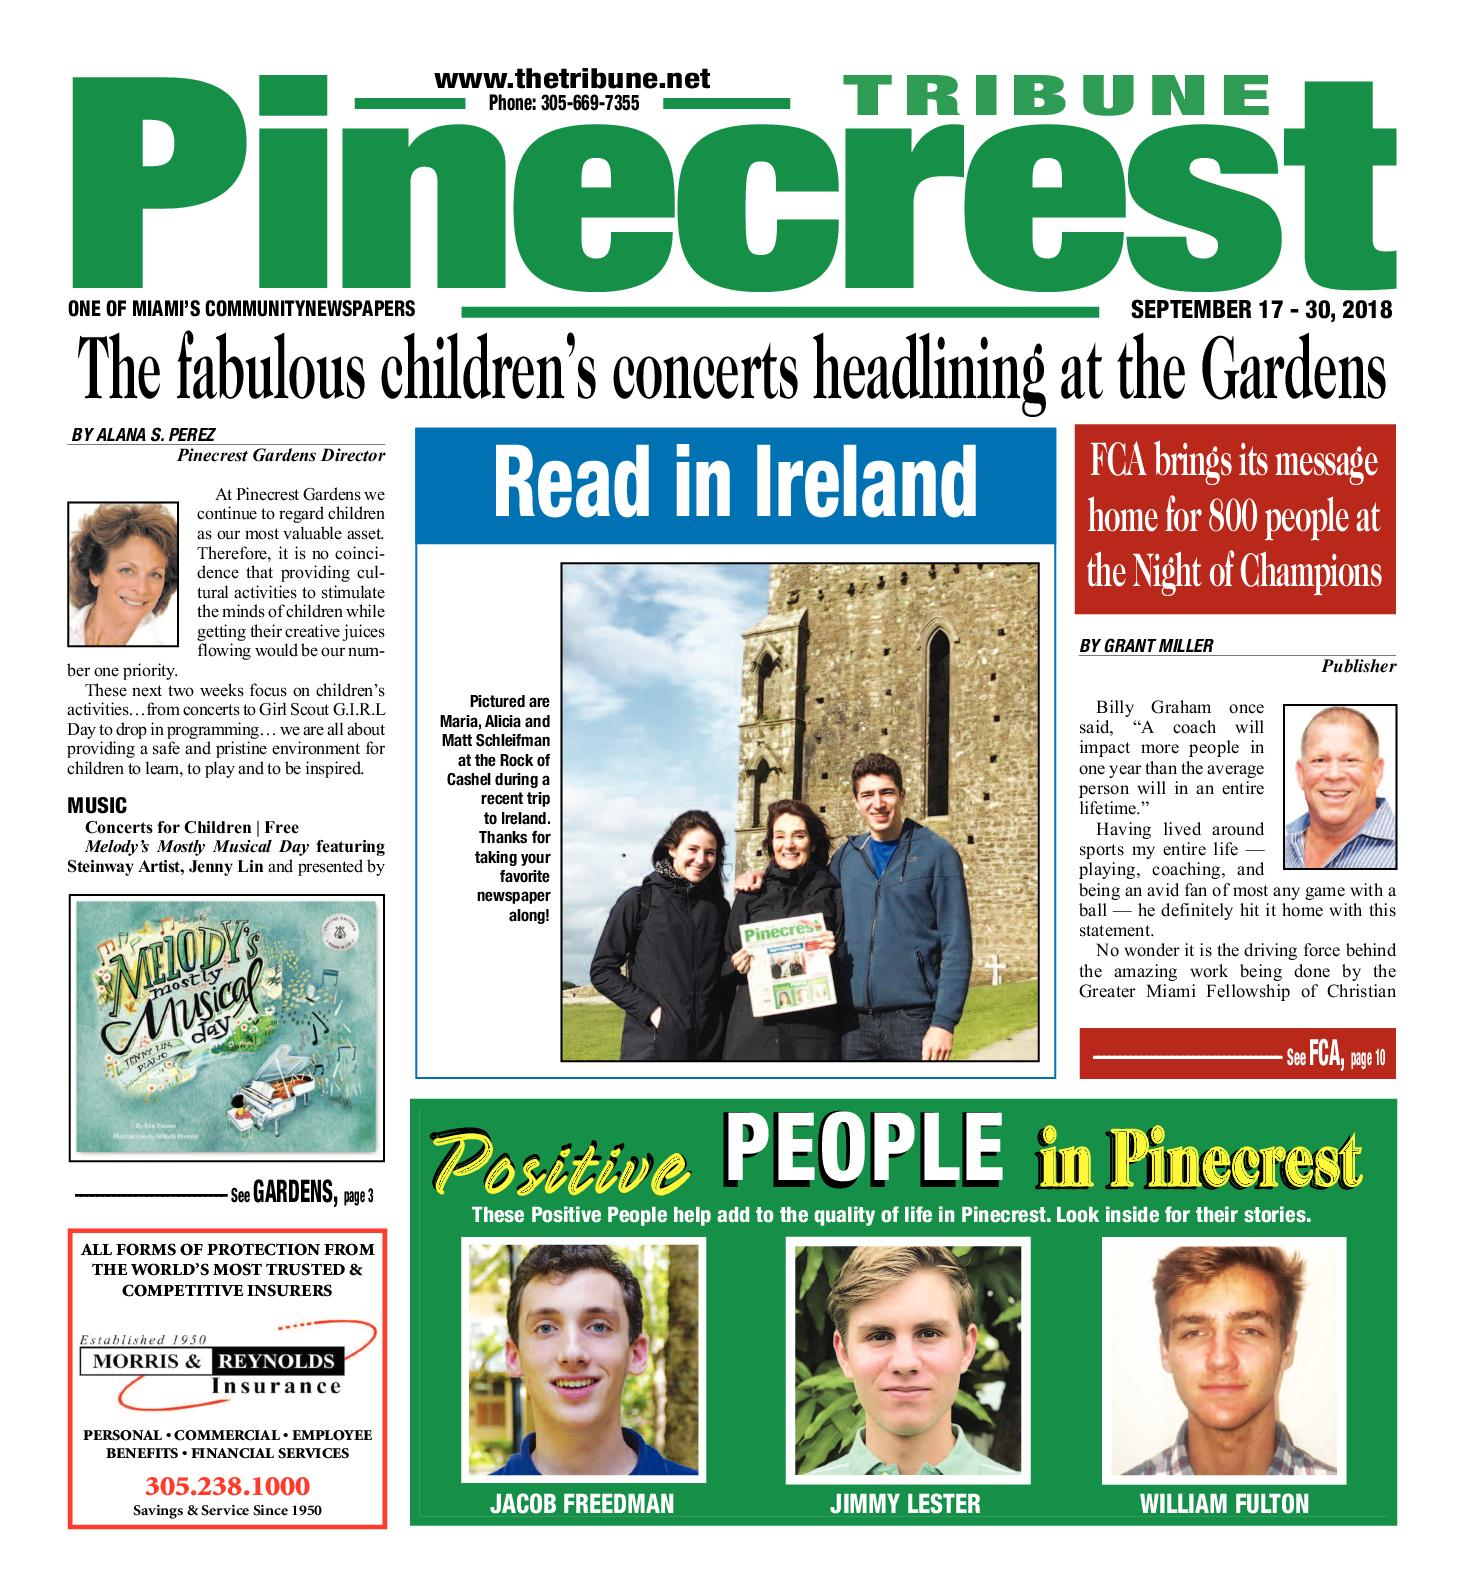 Calaméo - Pinecrest Tribune 9 17 2018